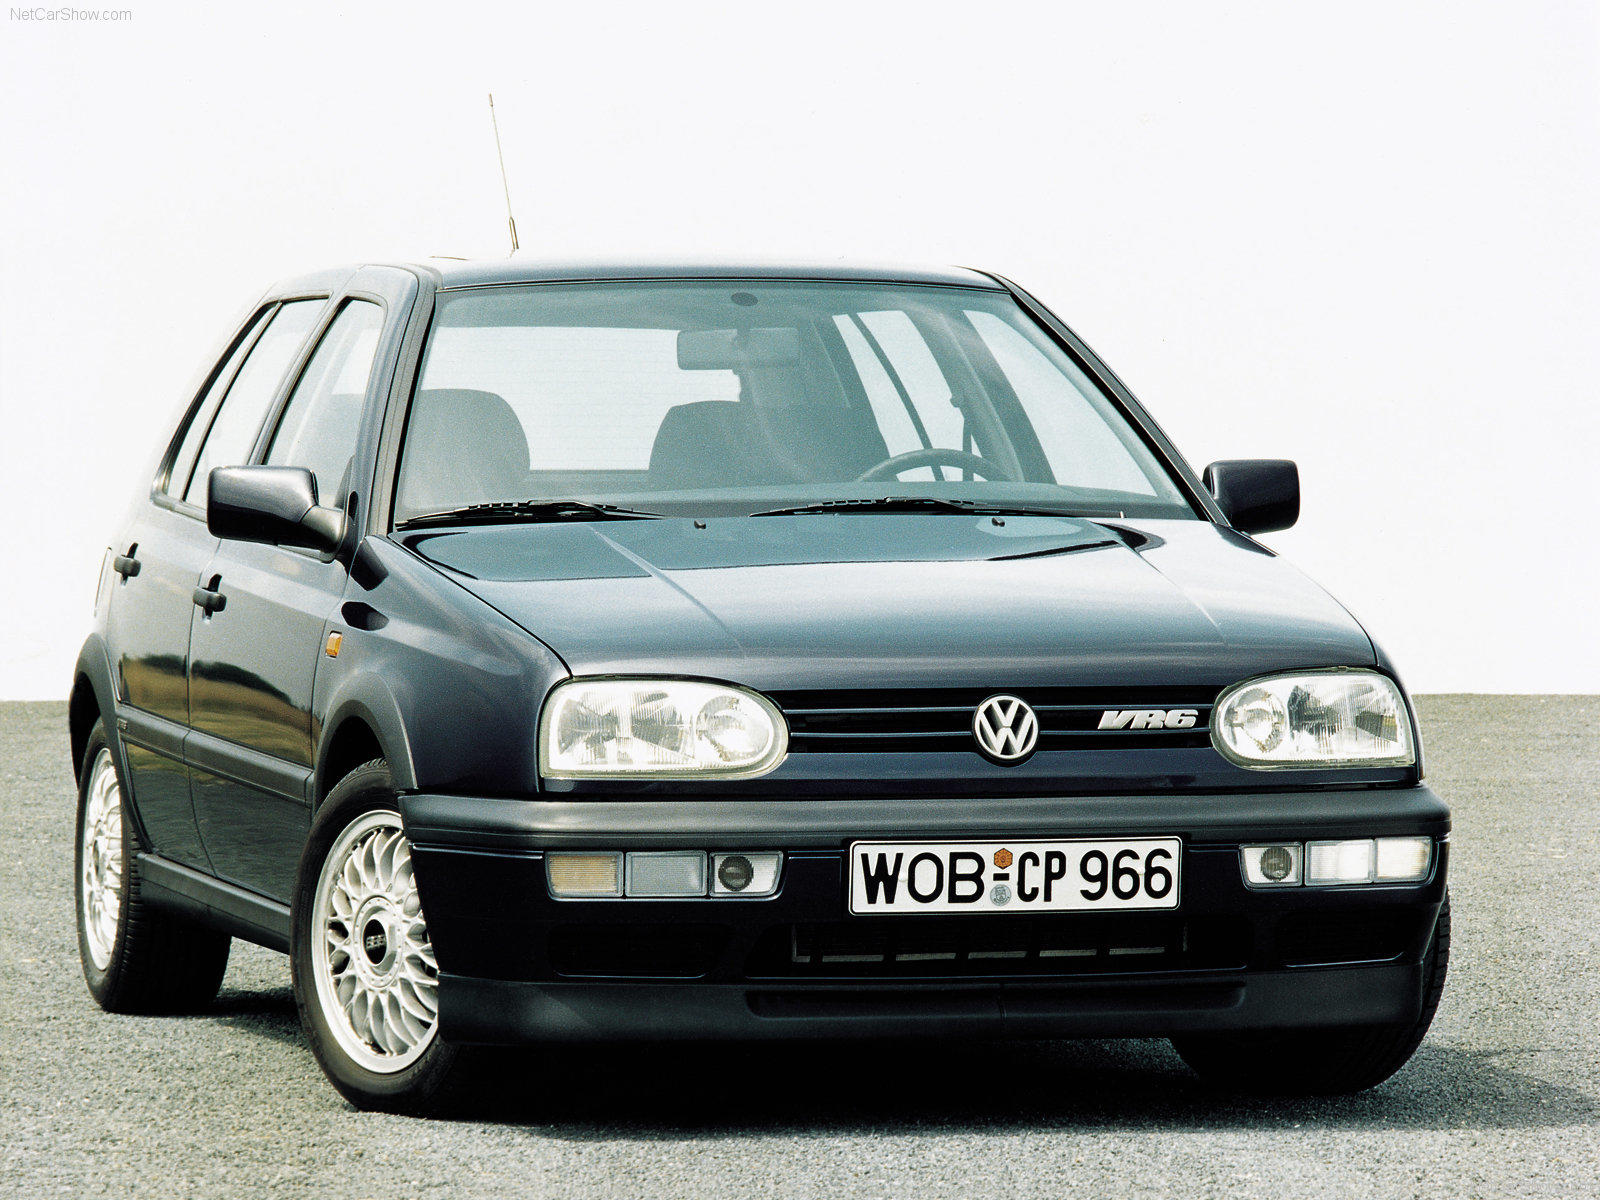 Volkswagen Gti Vr6 Specs >> VOLKSWAGEN Golf car technical data. Car specifications ...